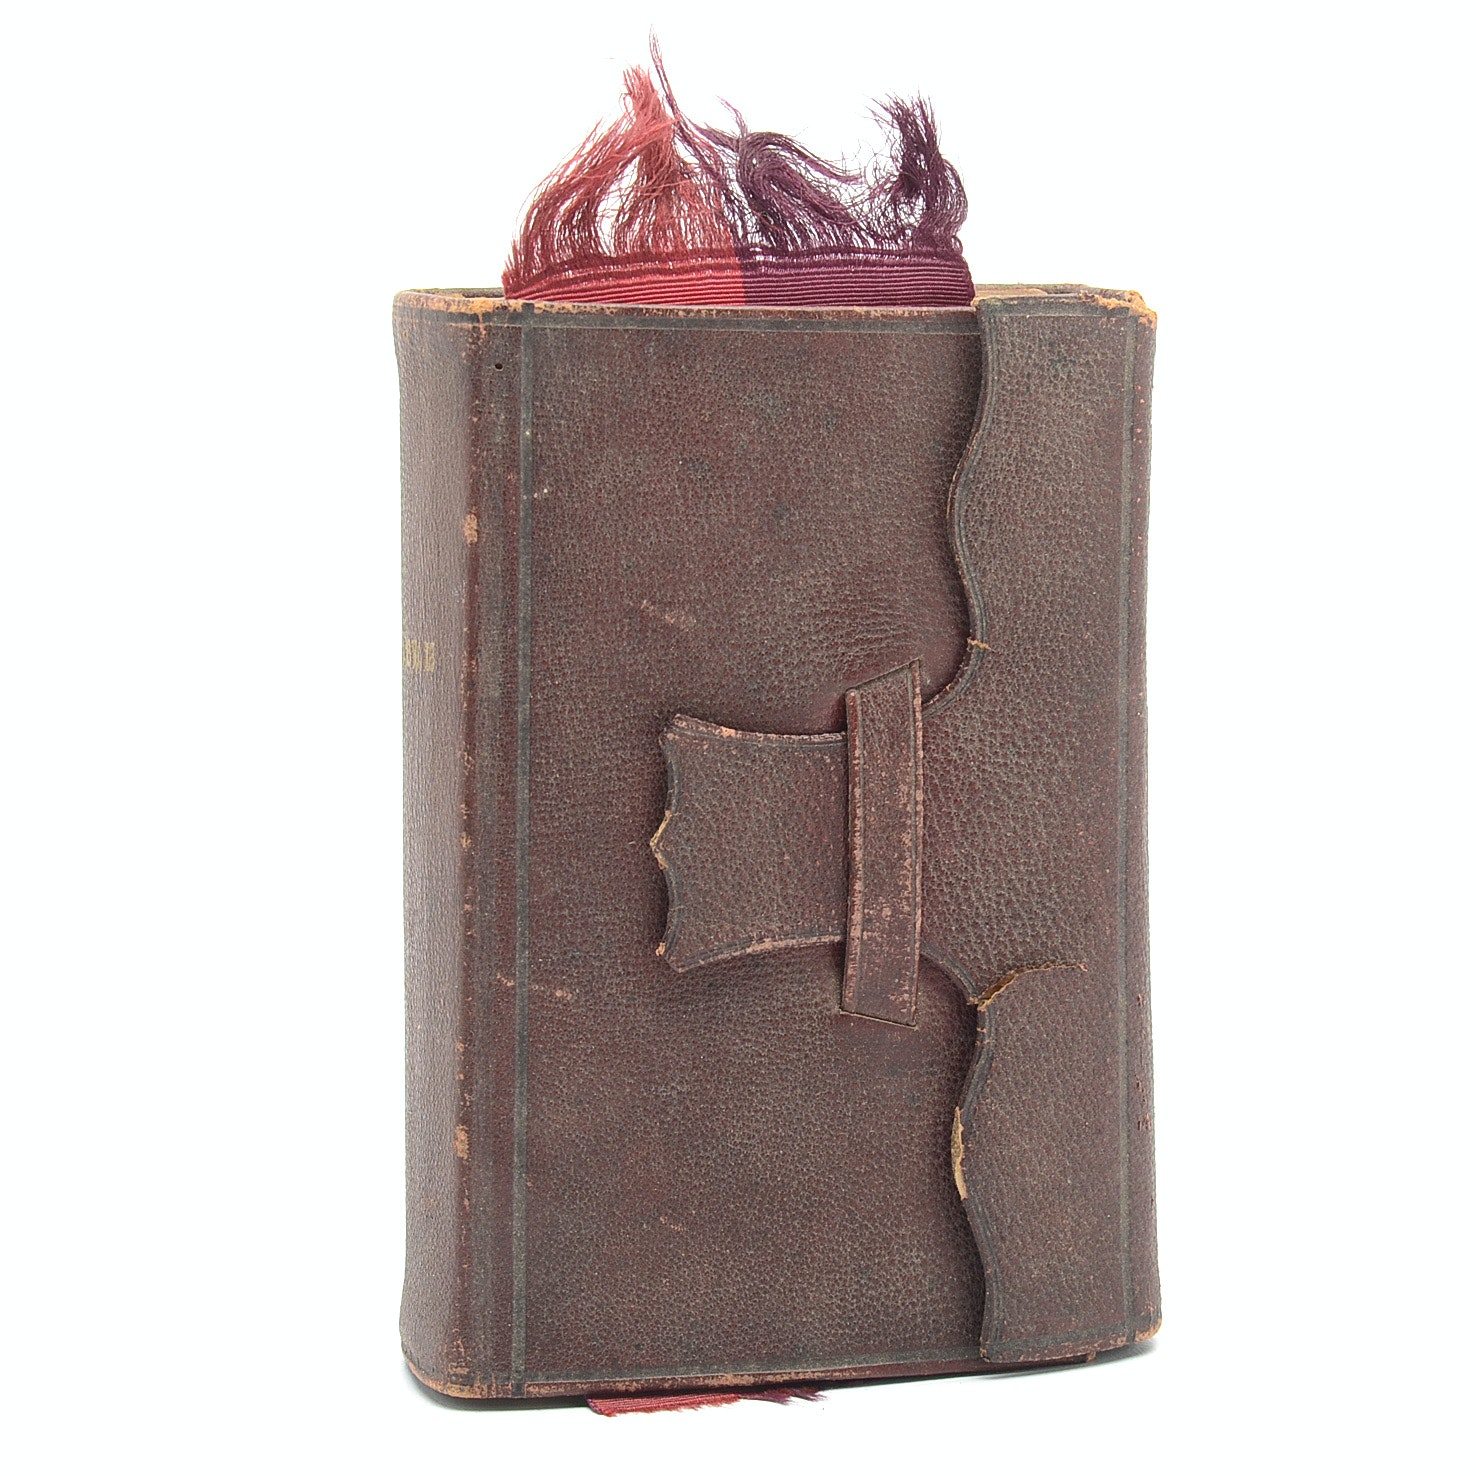 Civil War Pocket-Sized Bible With Inscription